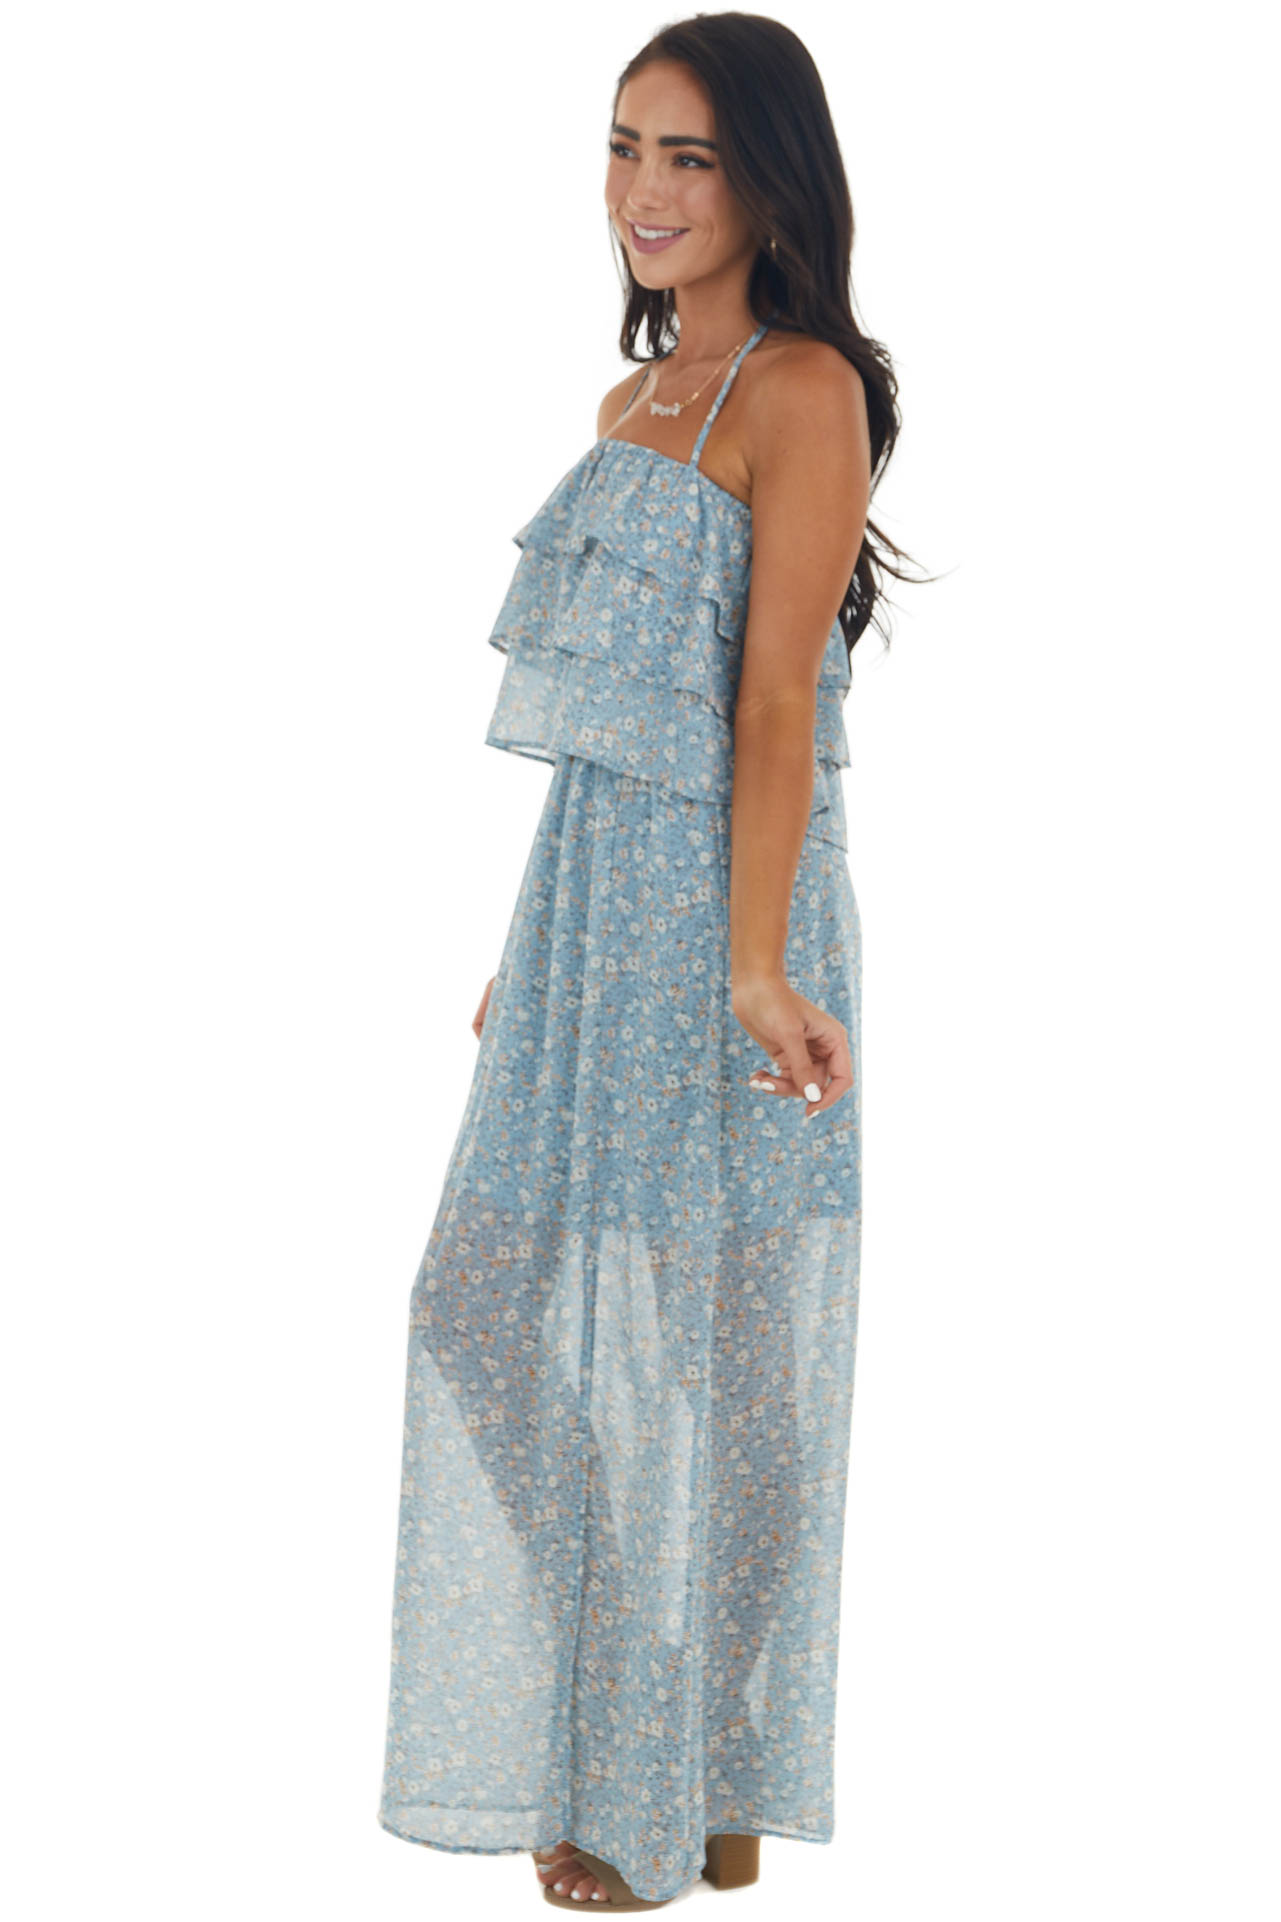 Powder Blue Ditsy Floral Tiered Overlay Dress